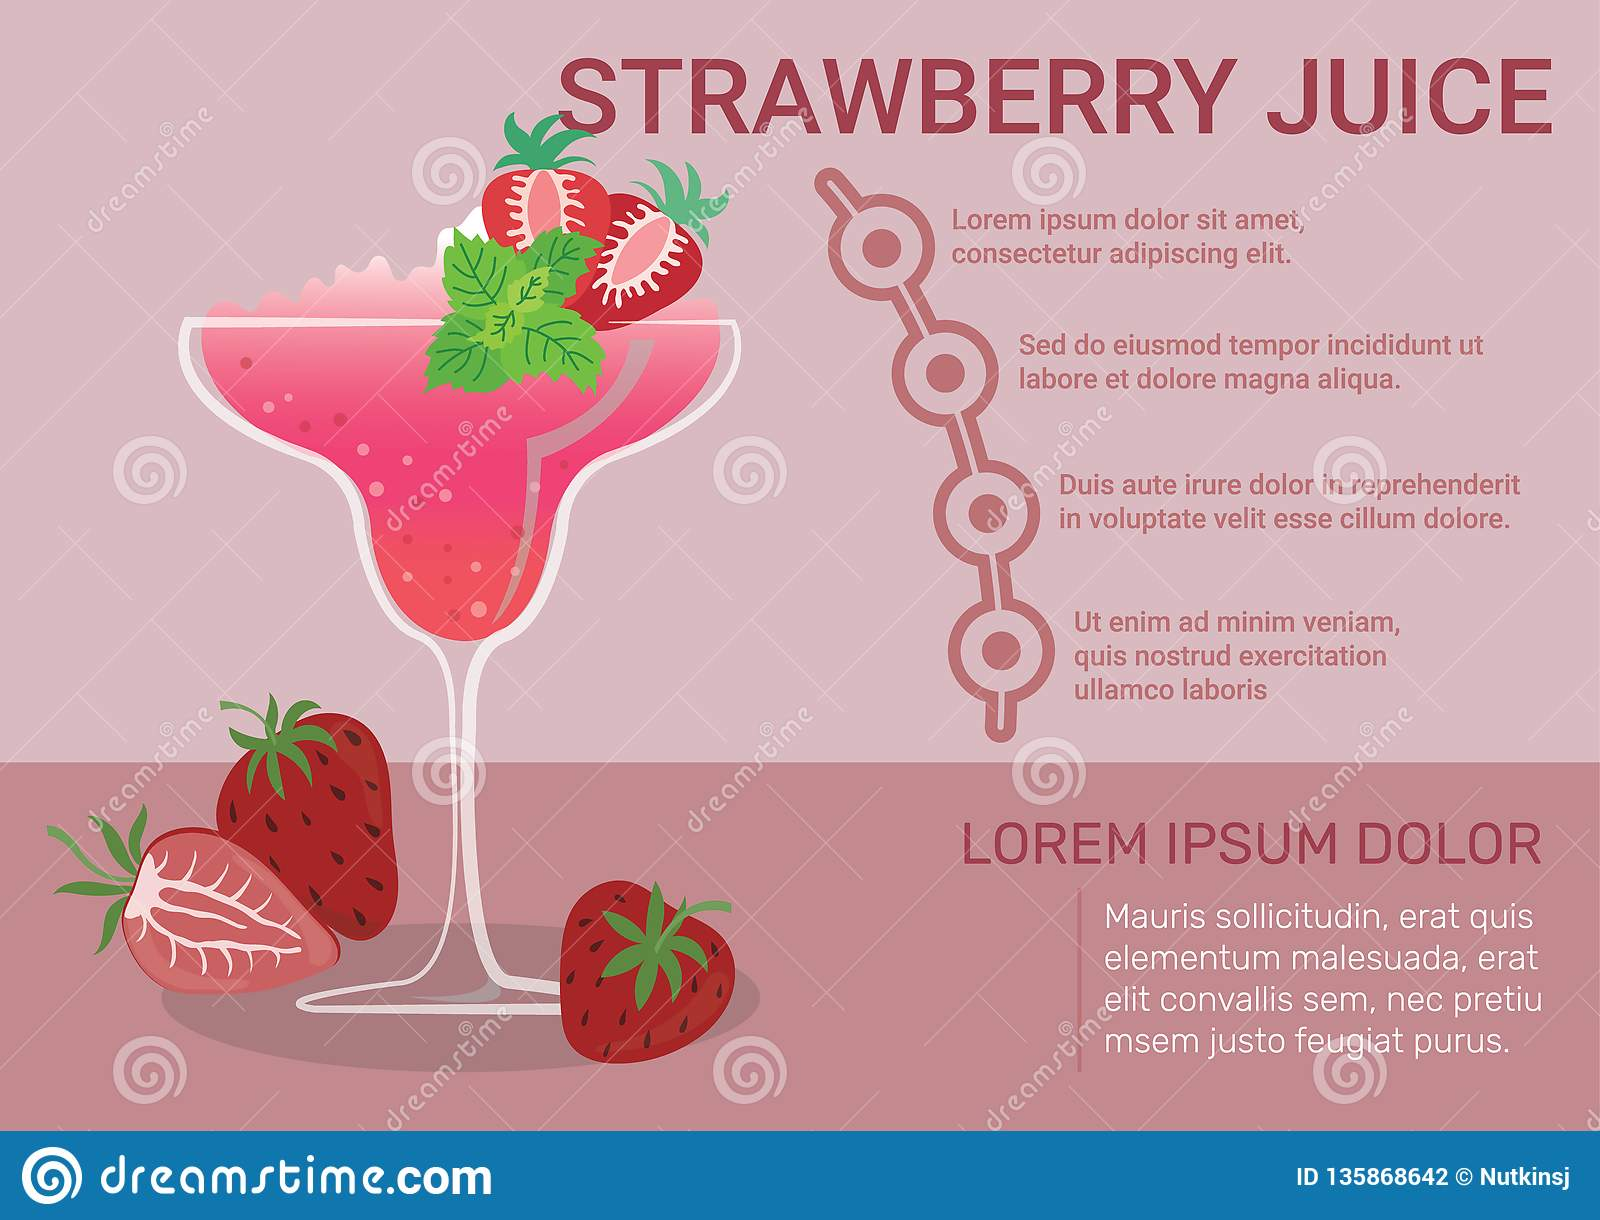 strawberry juice infographic stock vector - illustration of